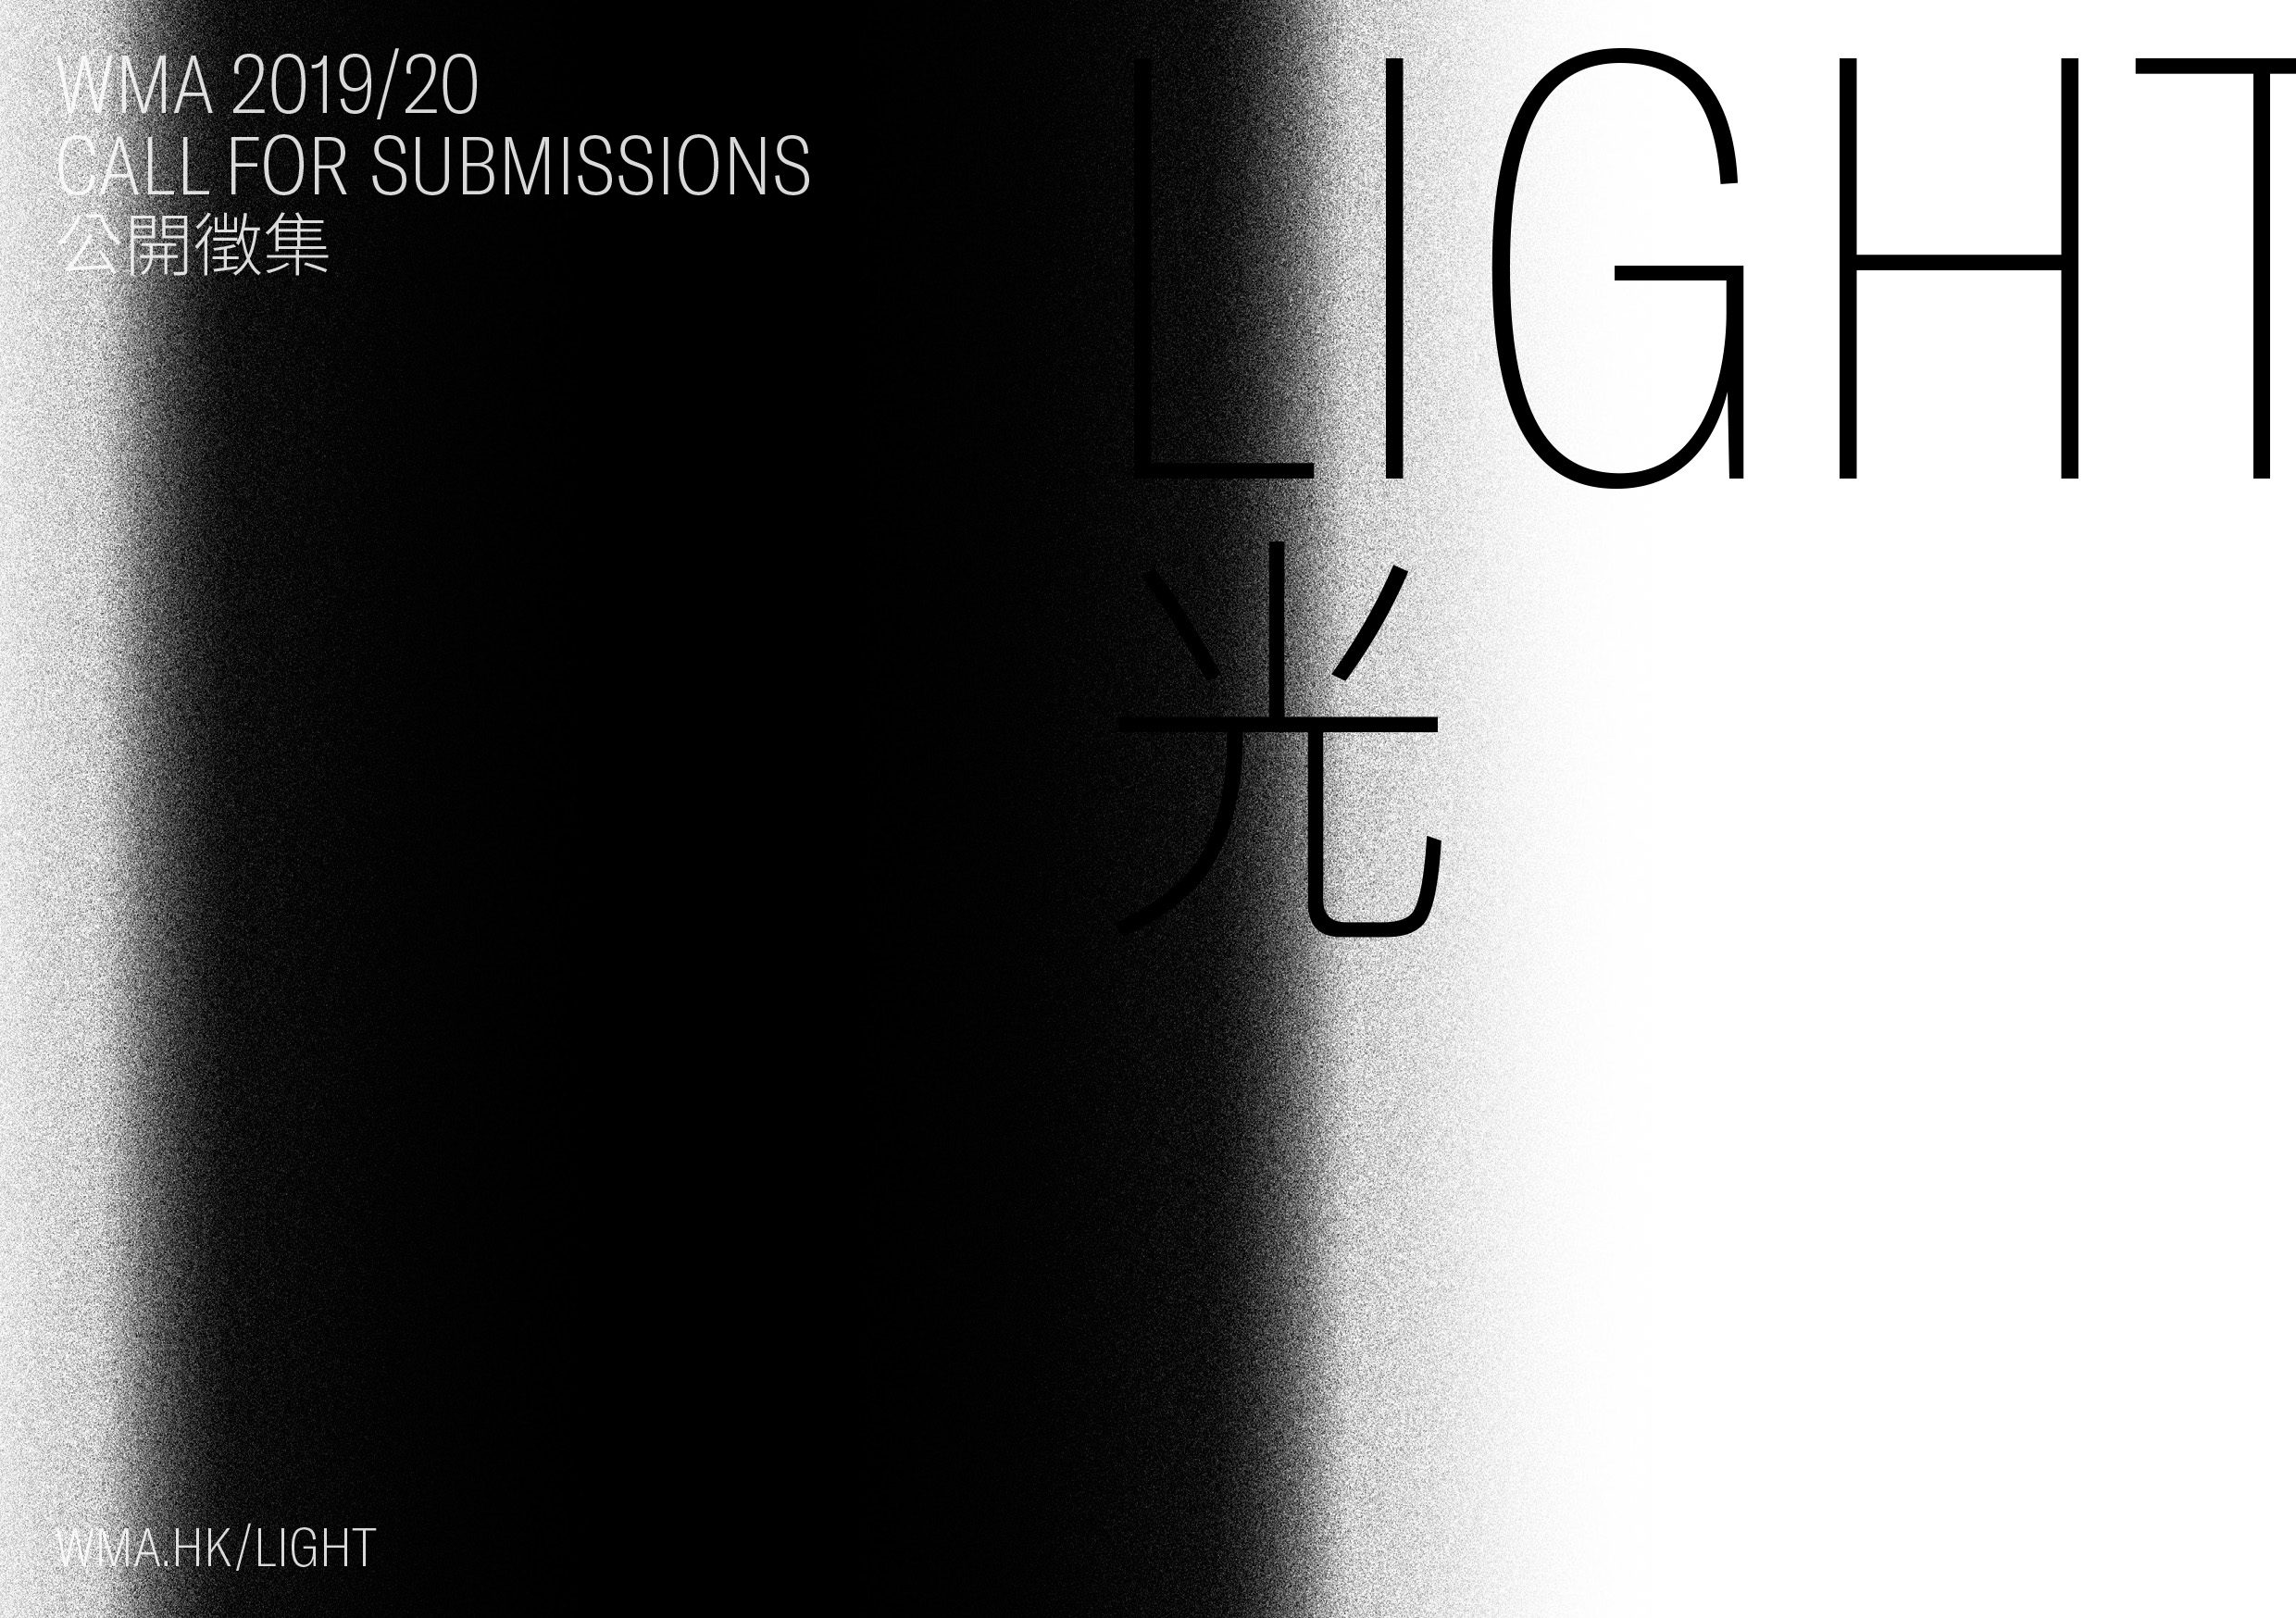 "WMA Masters and WMA Commission 2019/20 call for submission on the theme ""Light"" Submission starts now until 30 September 2019 - logo"